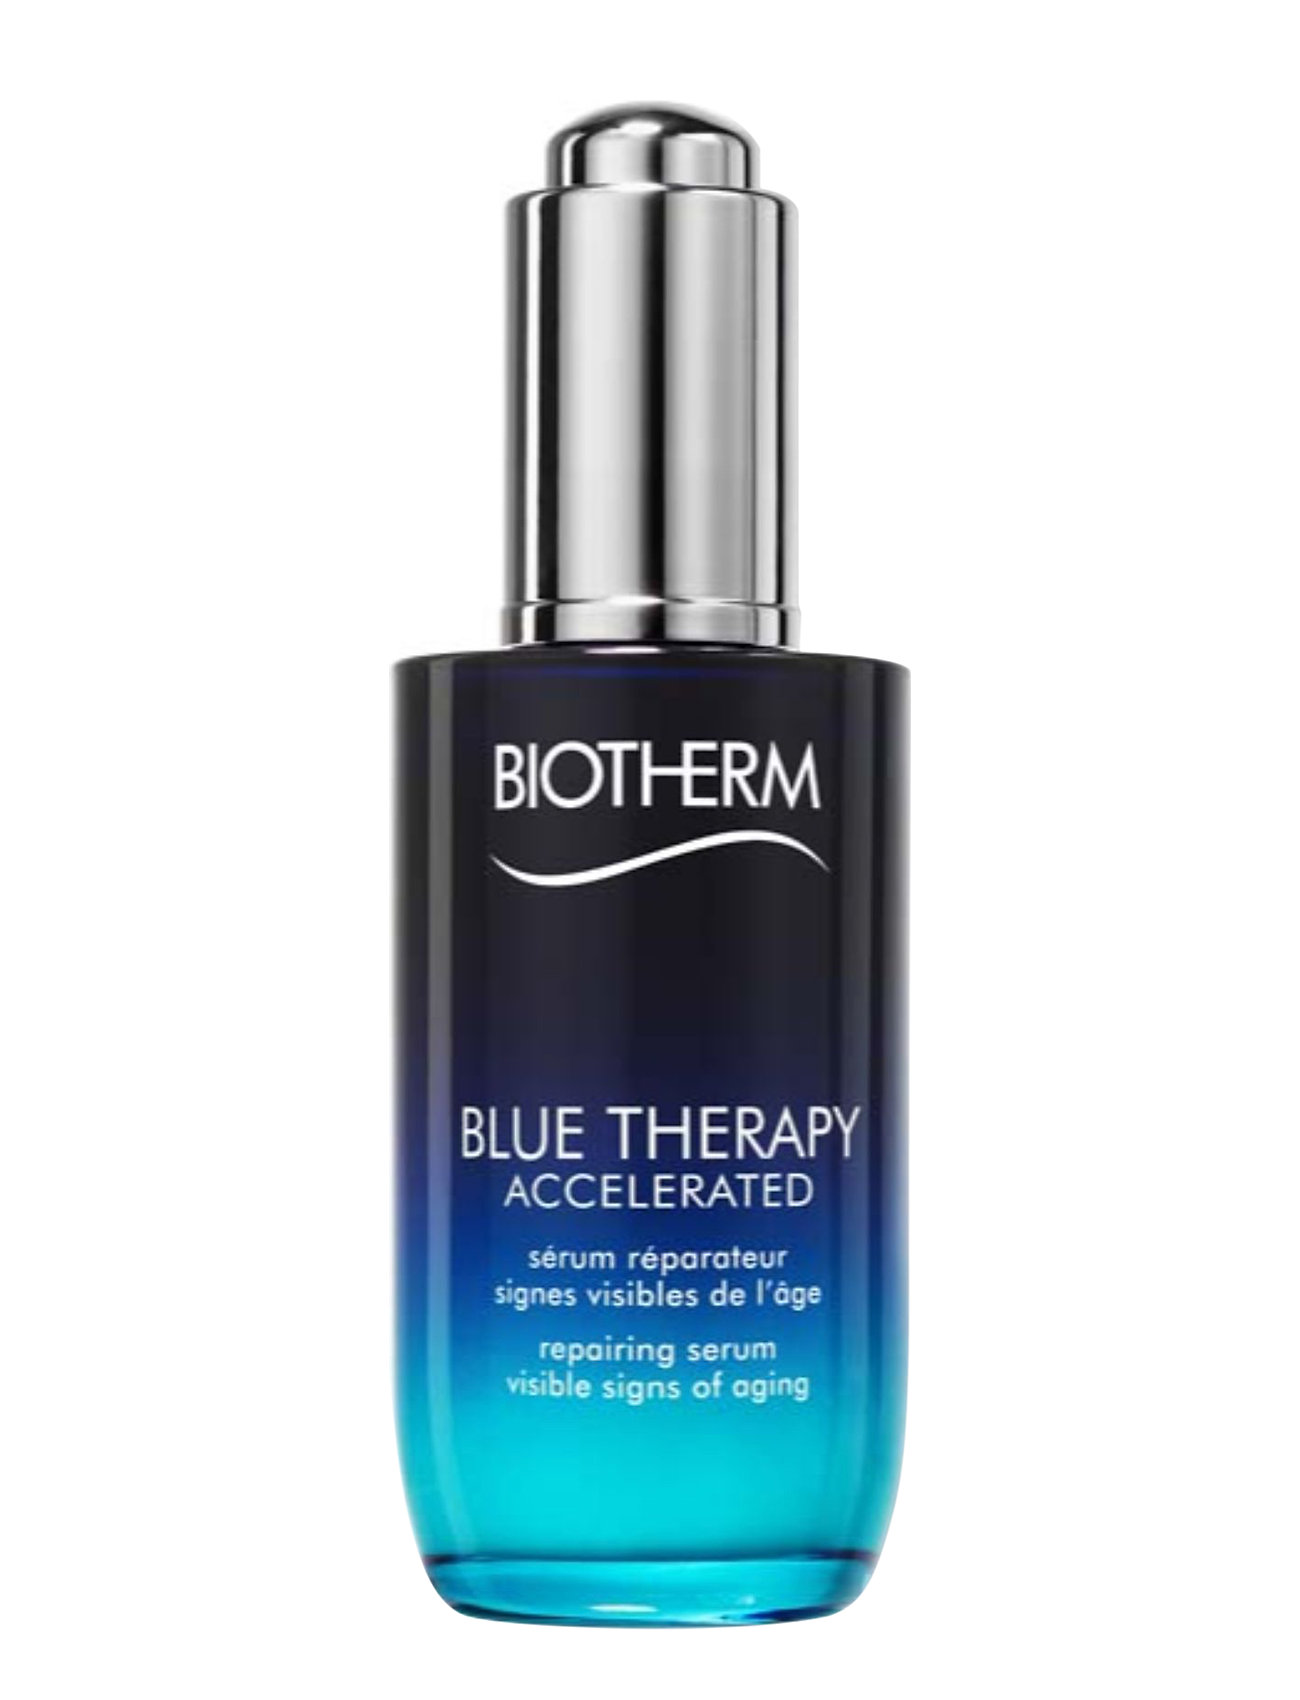 biotherm – Blue therapy accelerated serum 50 ml på boozt.com dk